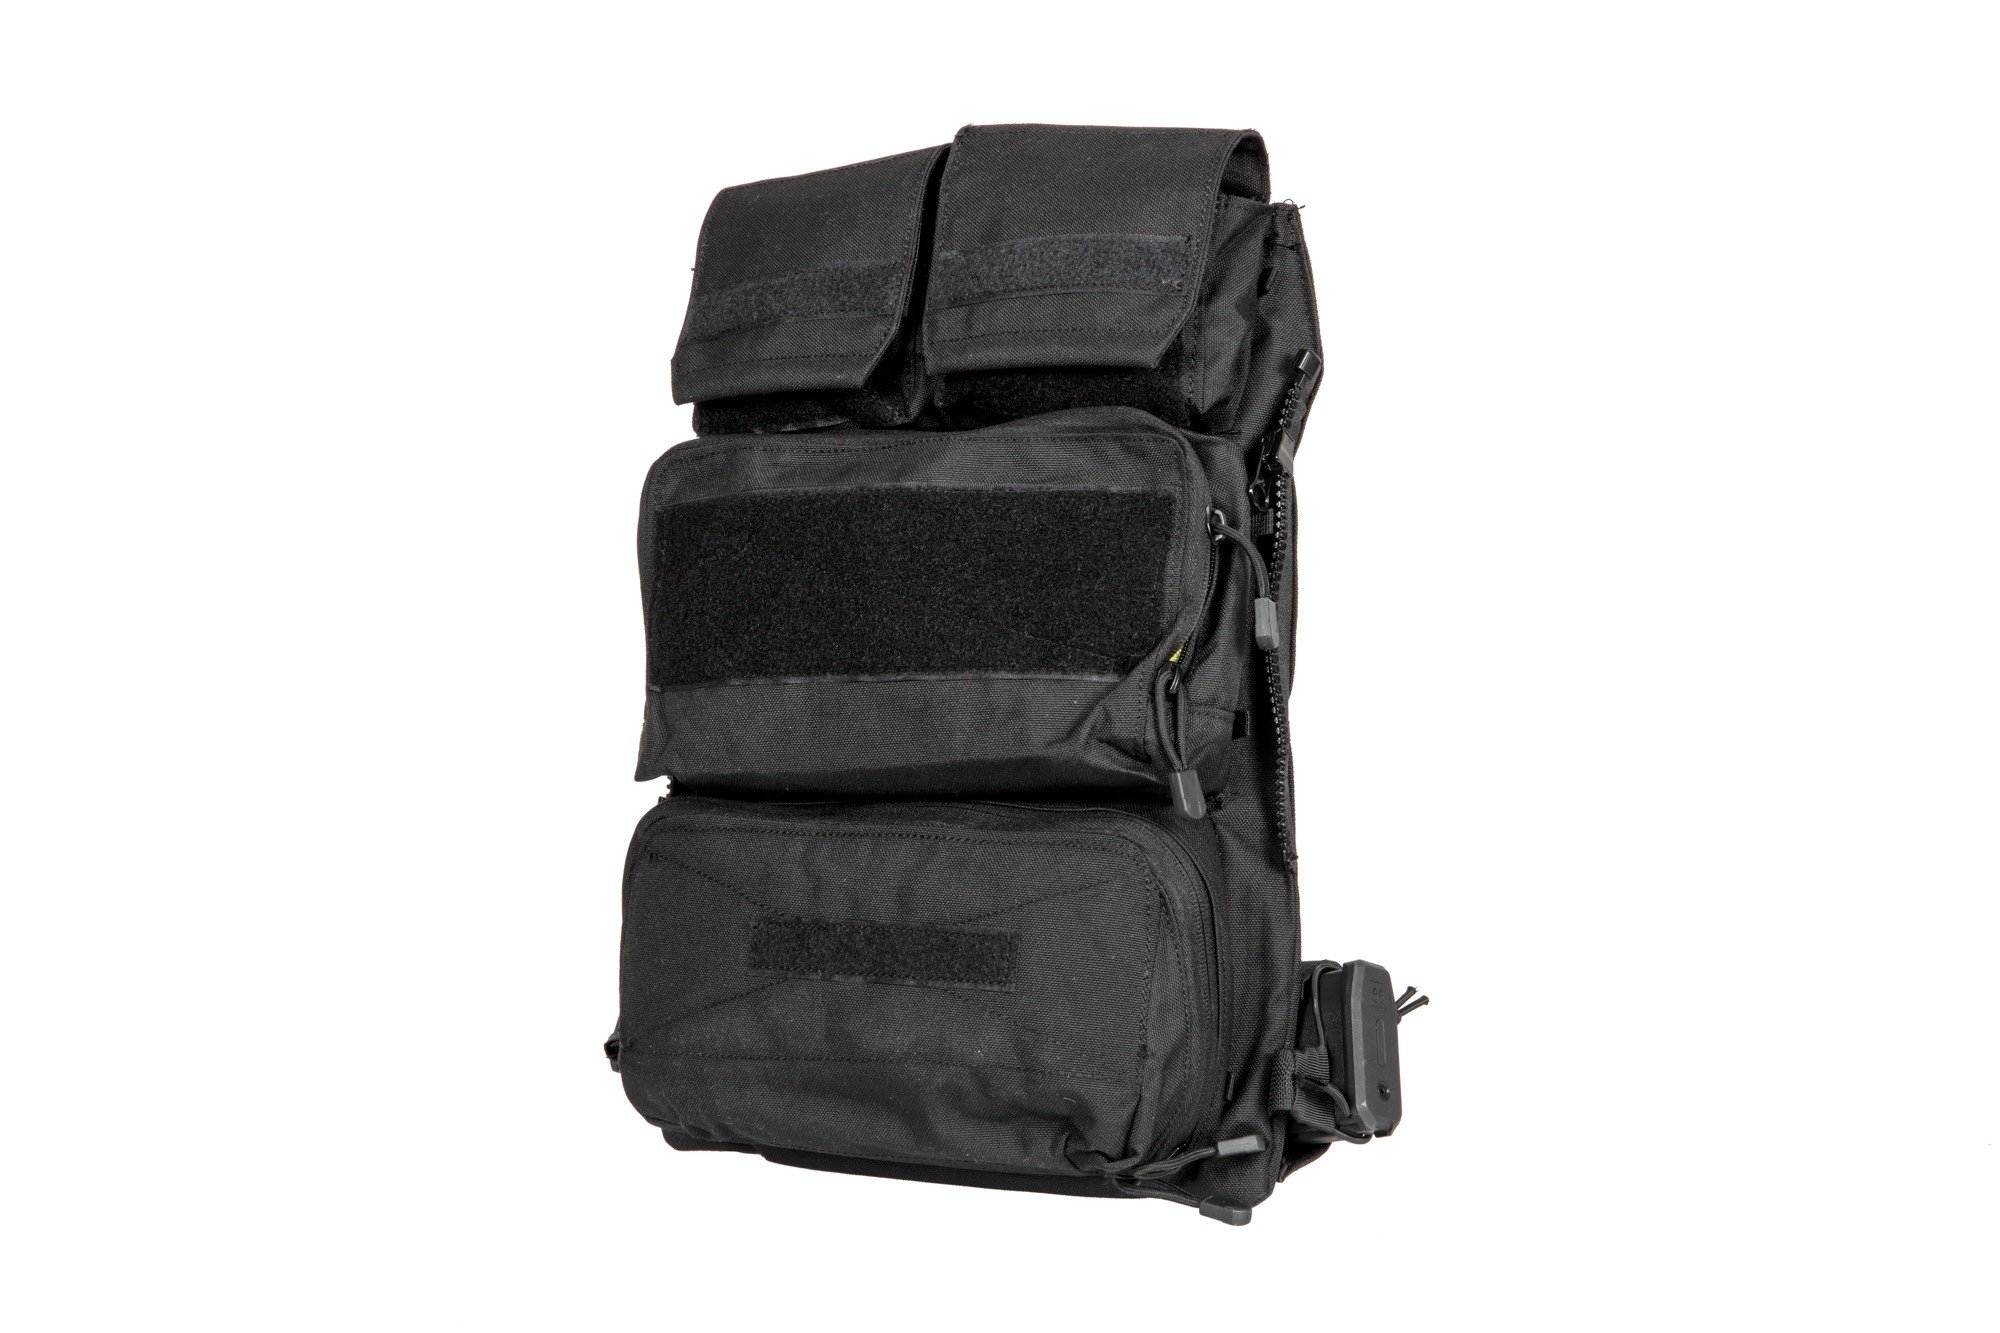 RUSH 2.0 ASSAULT FLAT BAG ČIERNY